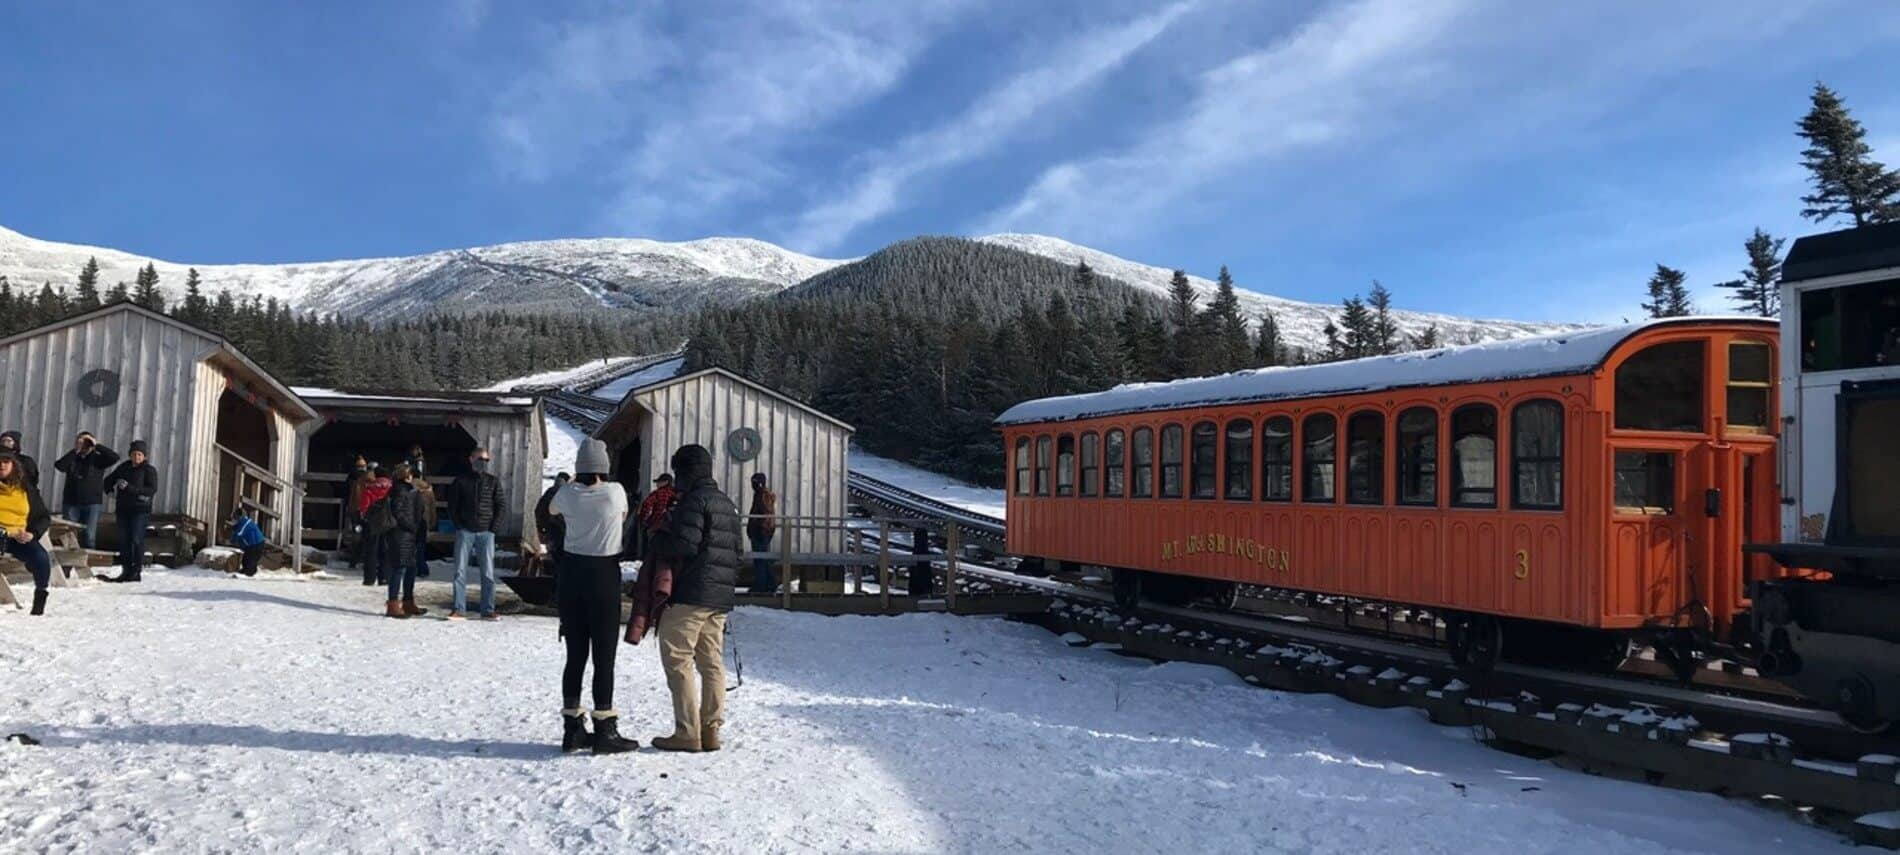 Bright orange cog railway car sitting on a track at the bottom of a mountain with people standing around